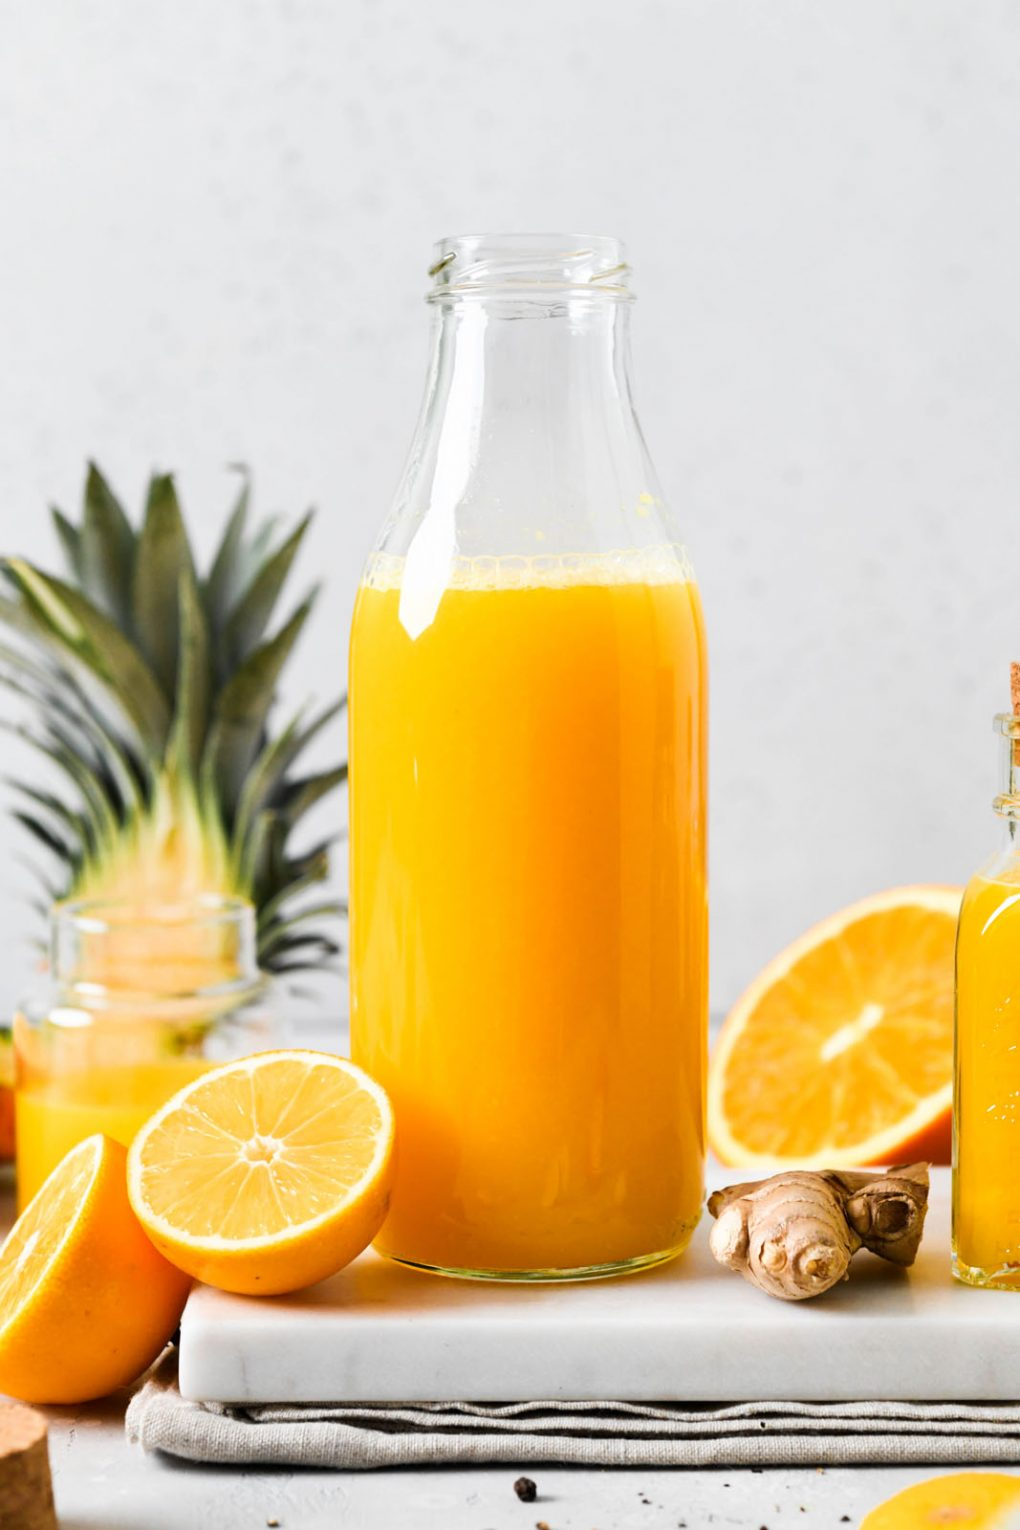 Straight on photograph of a large glass bottle filled with juice next to various sized small jars filled with bright yellow immune boosting wellness shots. On a light background next to the top of a pineapple, cut lemon, and some scattered black peppercorns.